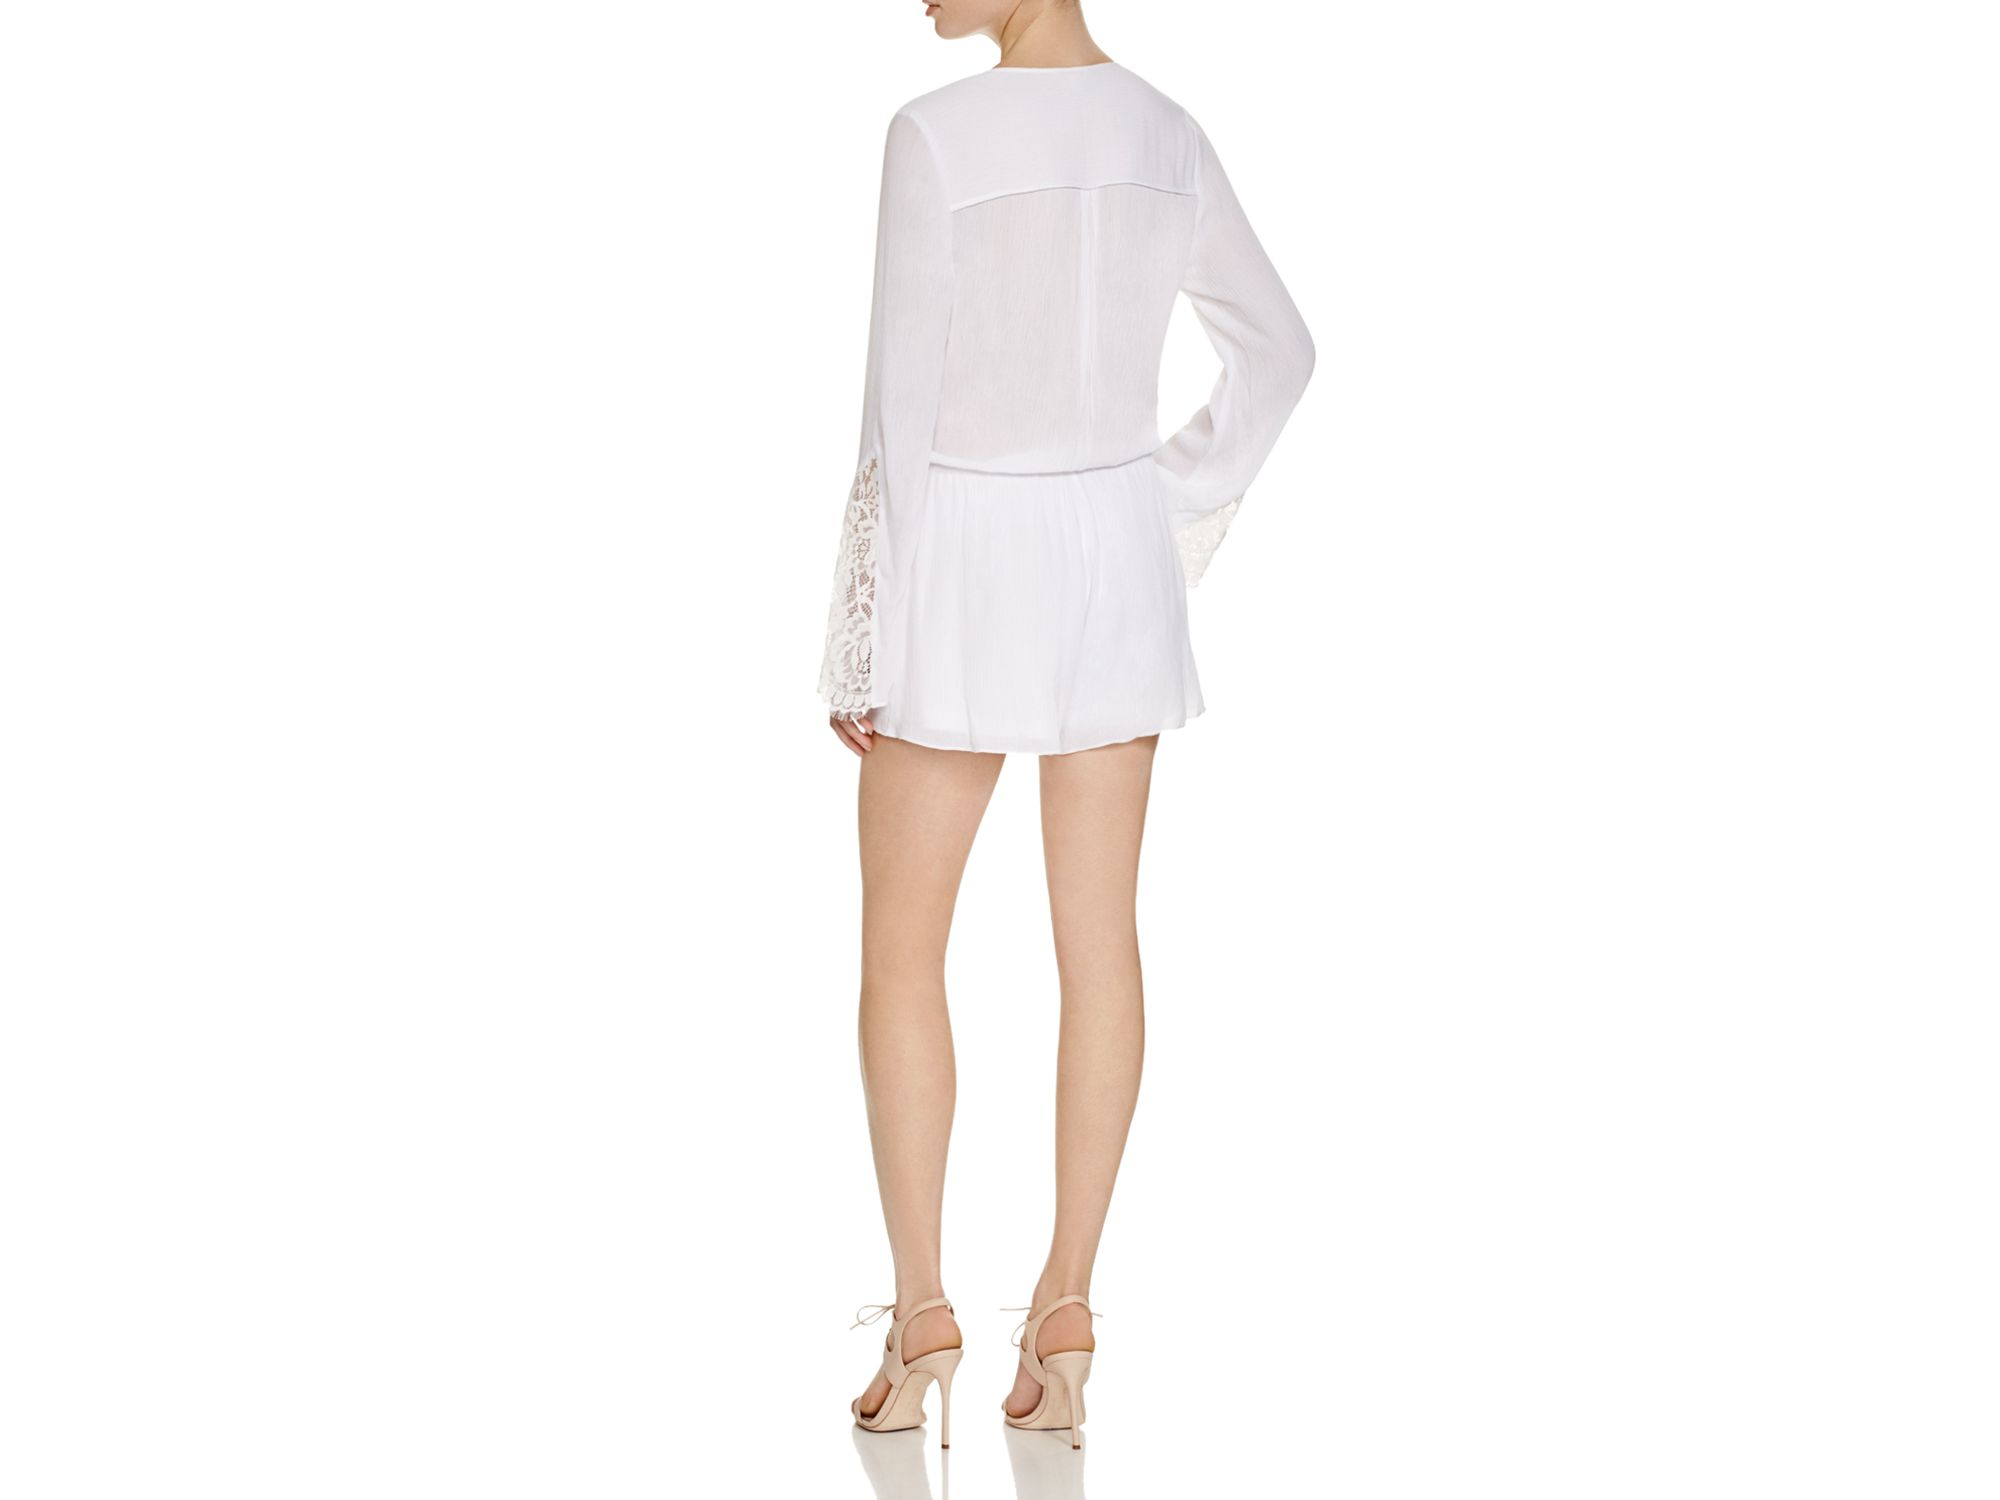 b31c979a600 Guess Angel Lace Mix Romper in White - Lyst